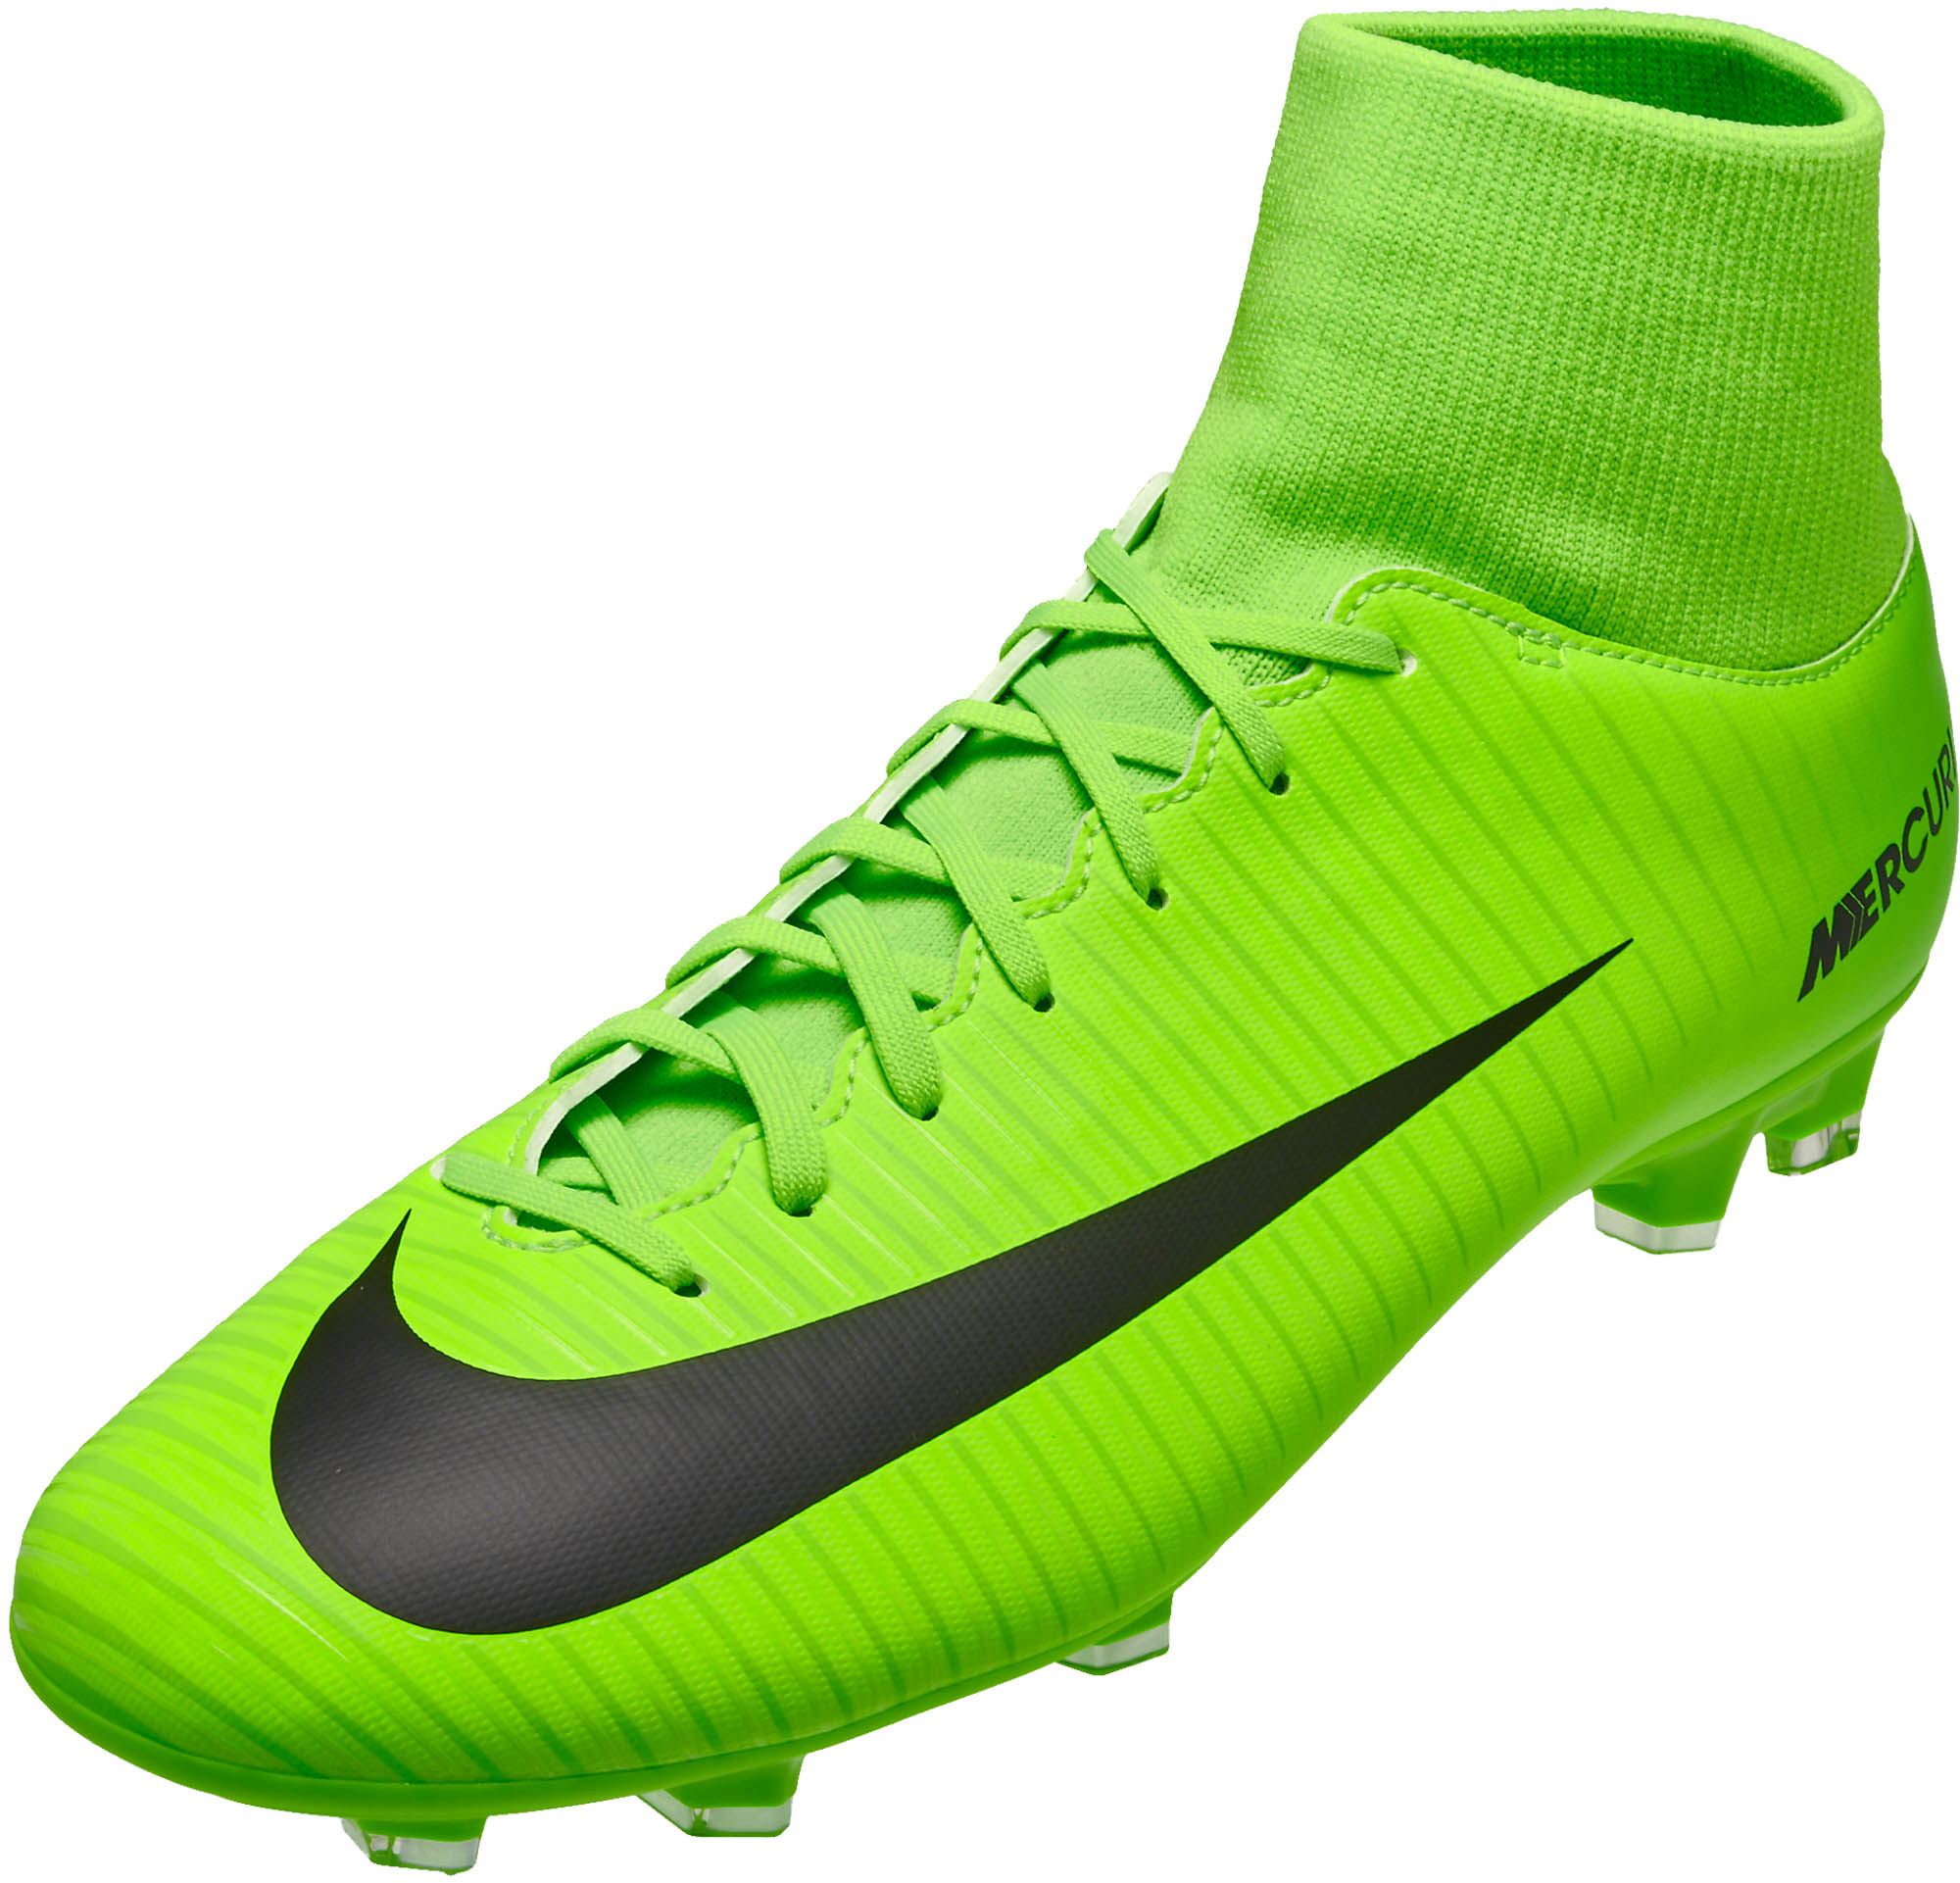 nike mercurial victory vi df fg soccer cleats electric. Black Bedroom Furniture Sets. Home Design Ideas